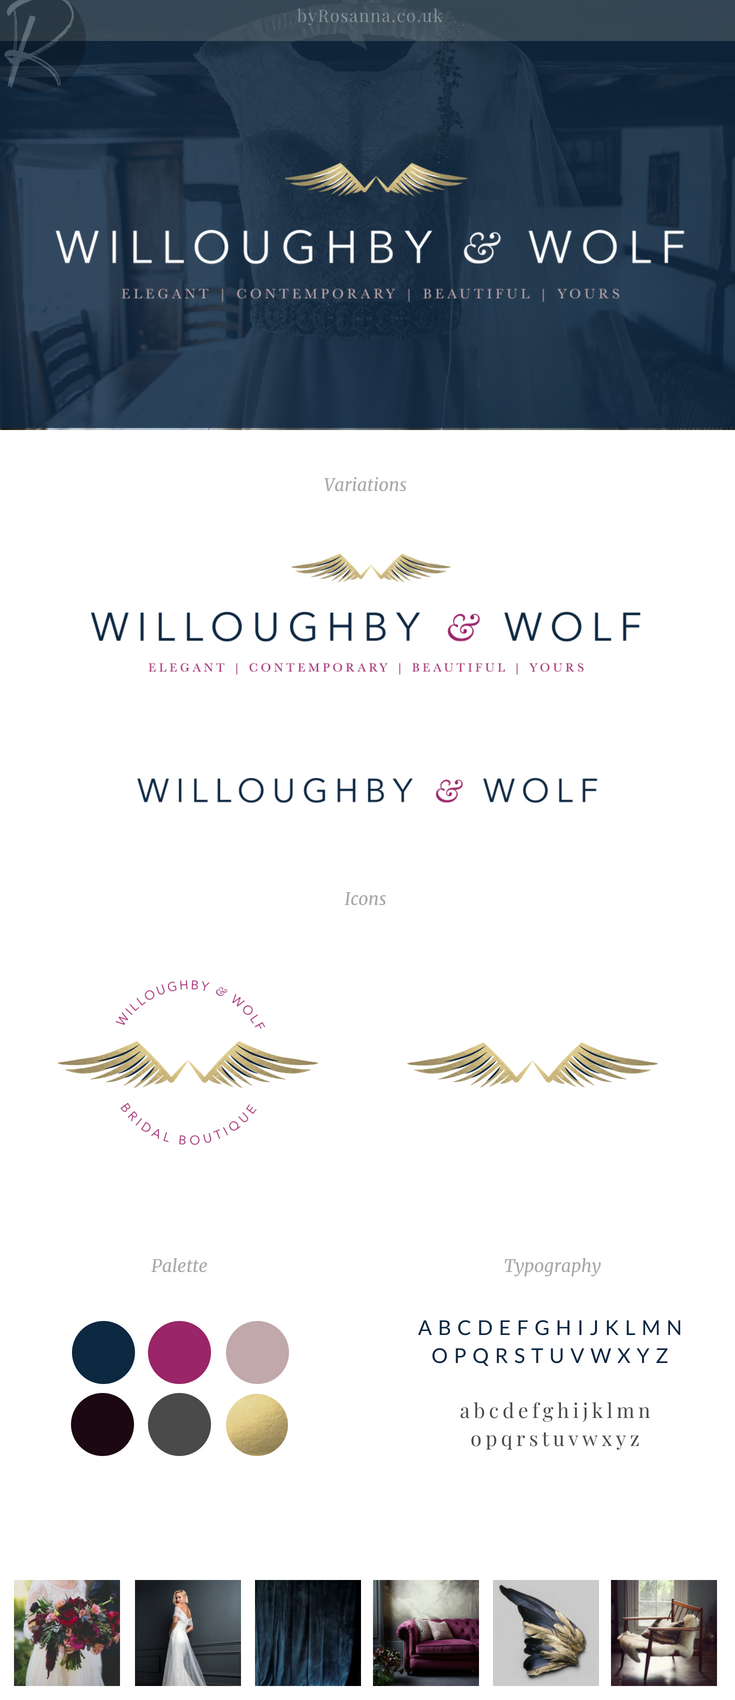 Brand design and logo concept for Willoughby & Wolf byRosanna